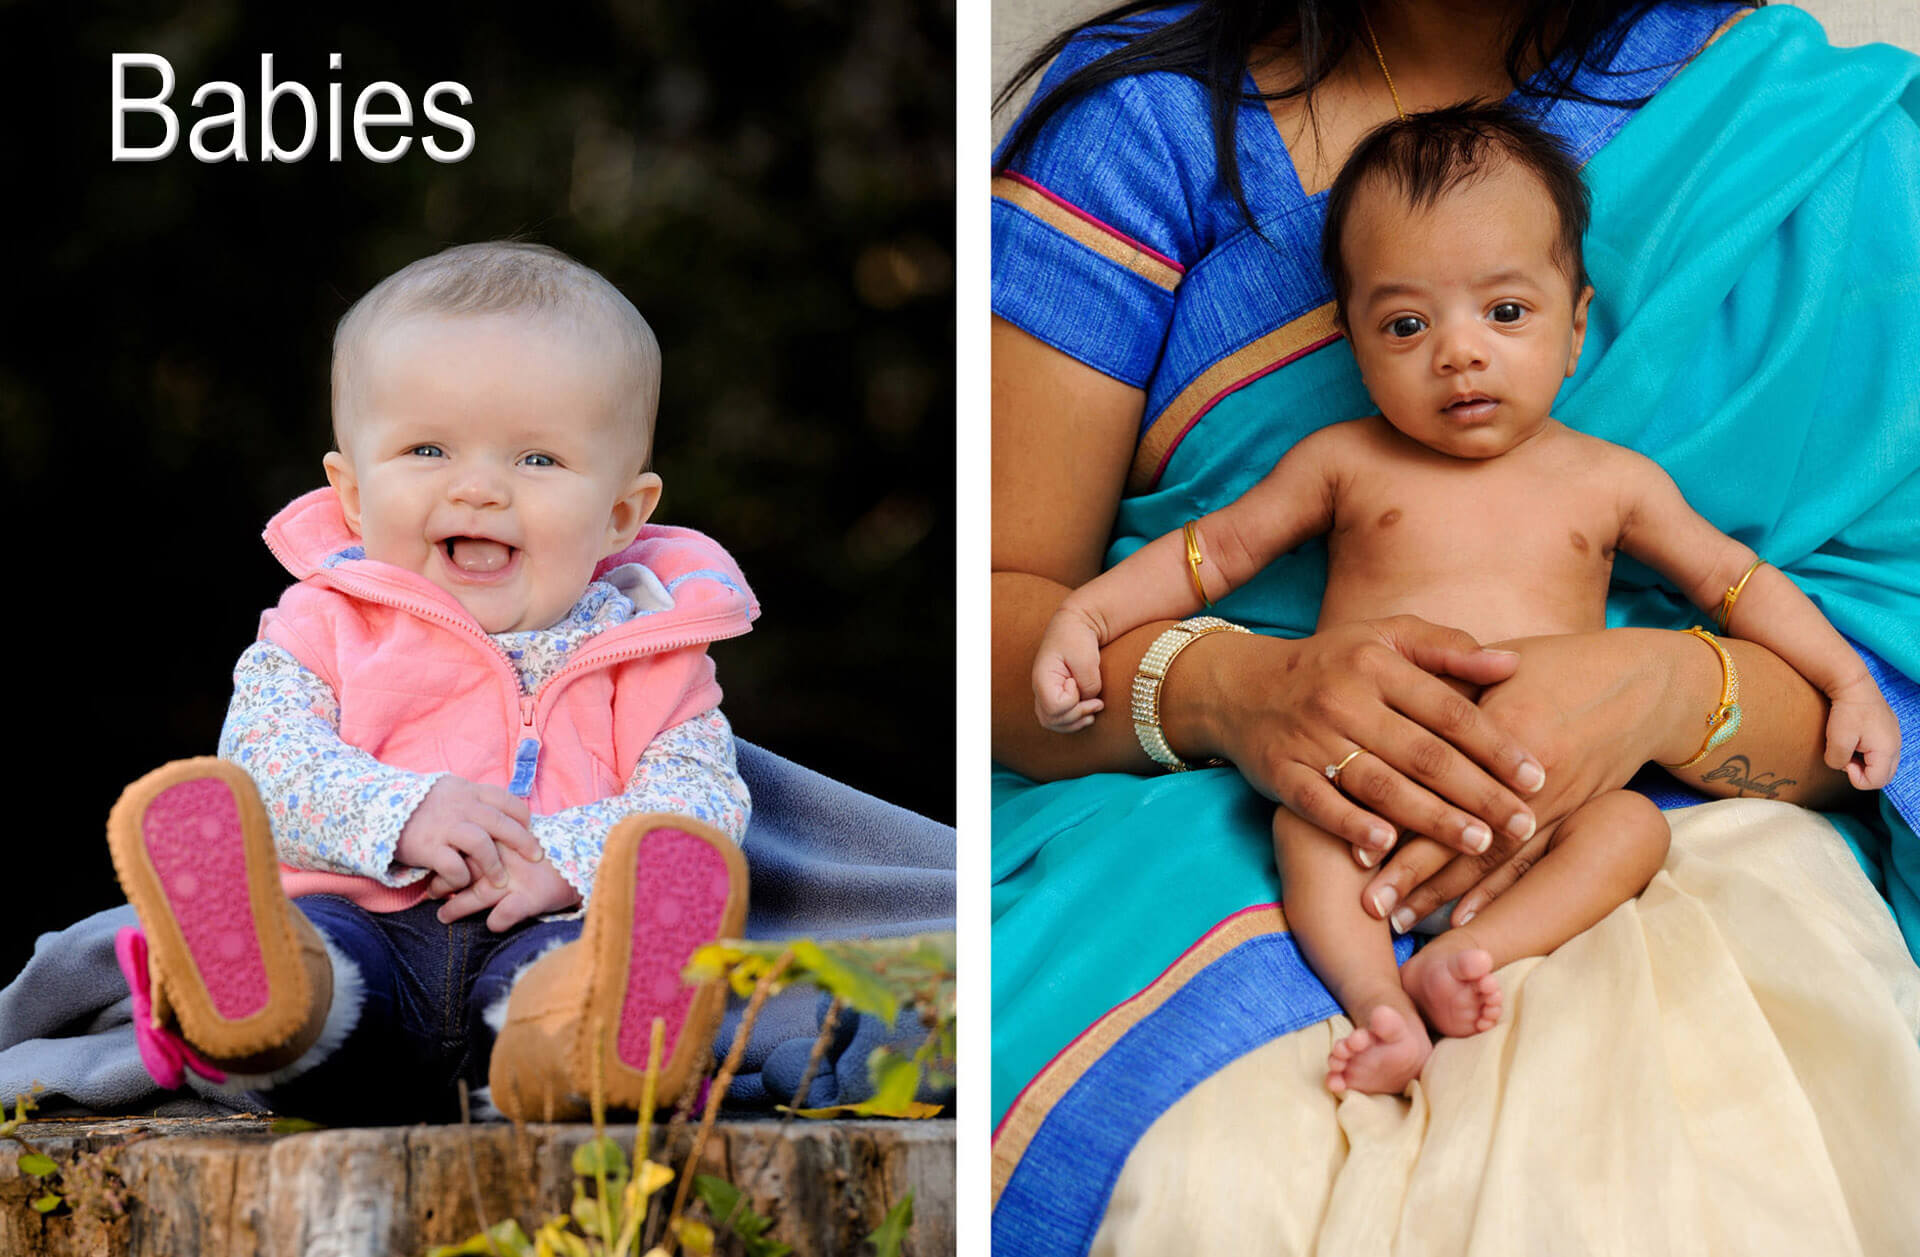 Baby photography is one of Marci Curtis's favorite things to photograph in metro Detroit, Michigan.